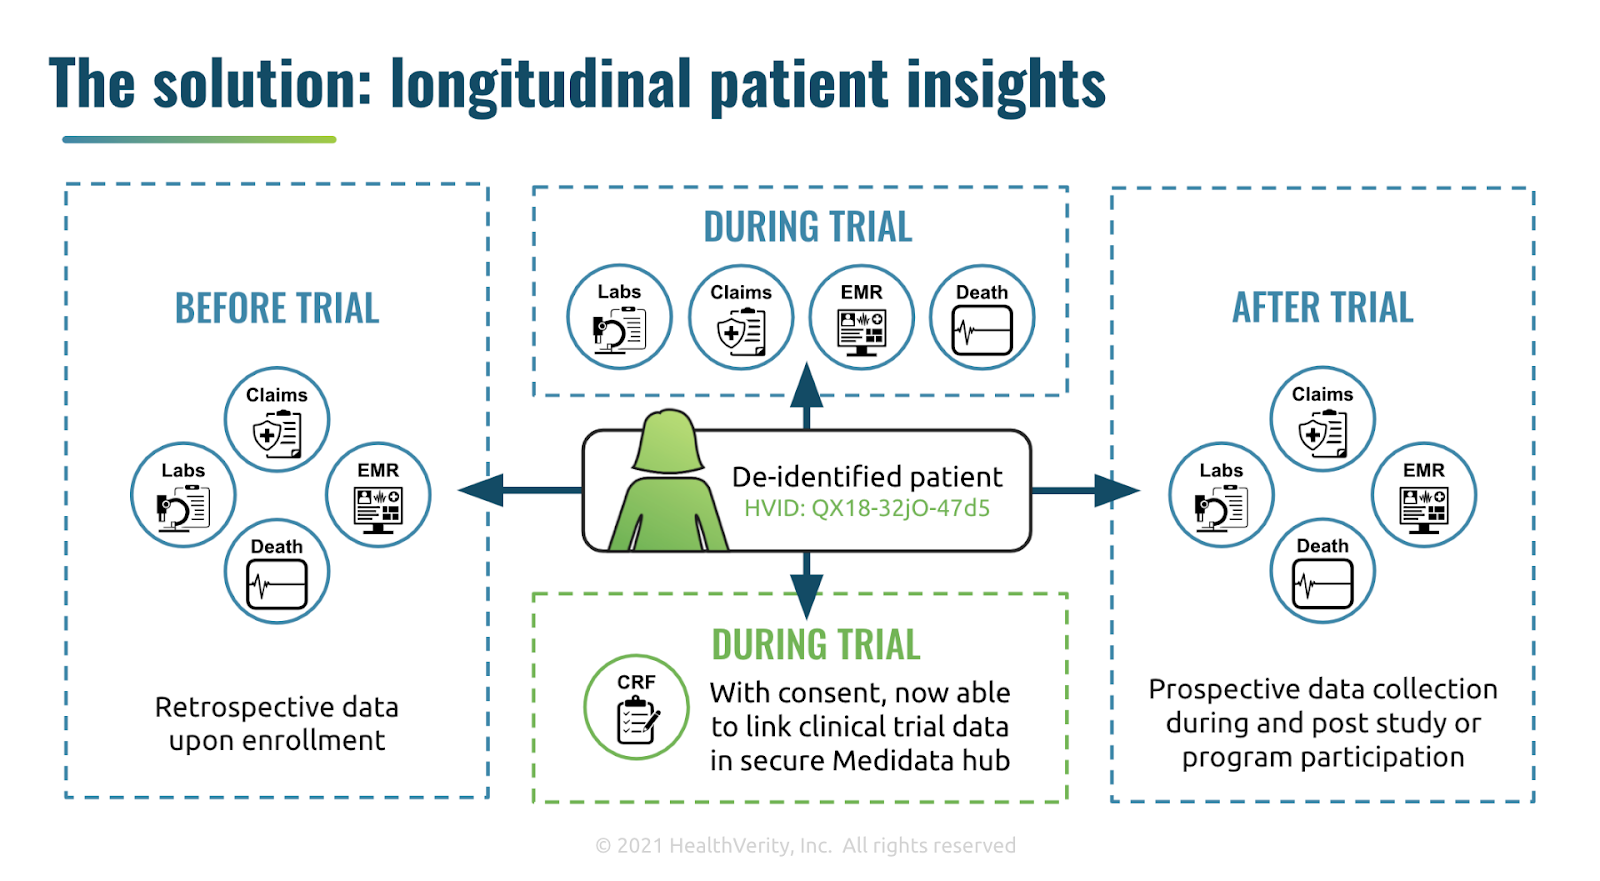 The solution: longitudinal patient insights